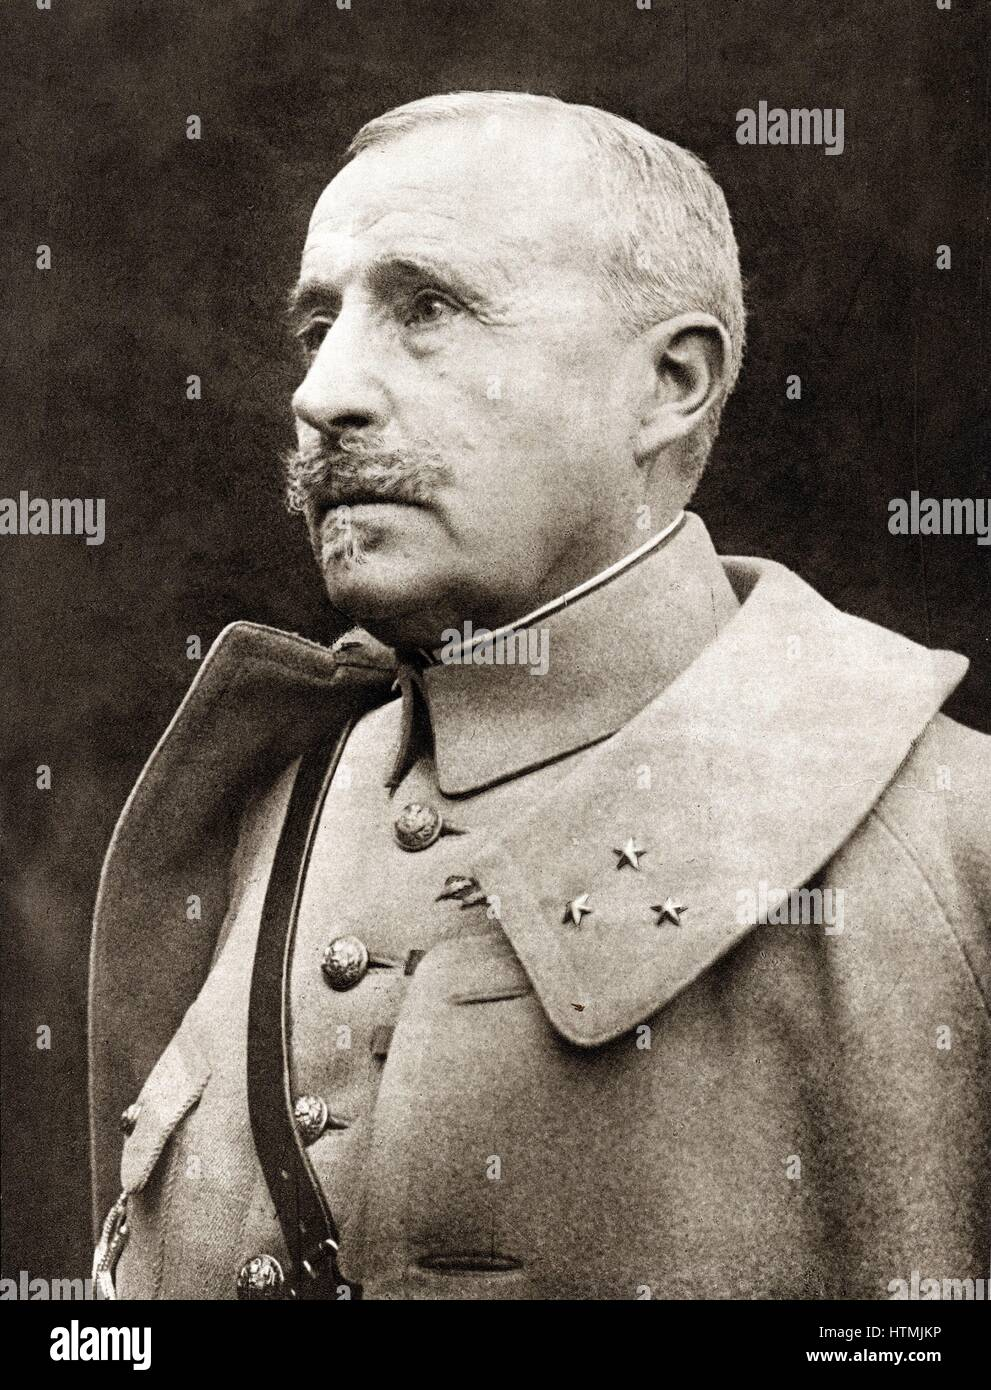 Robert Nivelle (1857-1924) French general. Commander-in-Chief December 1916 to May 1917. Superceded by Petain - Stock Image